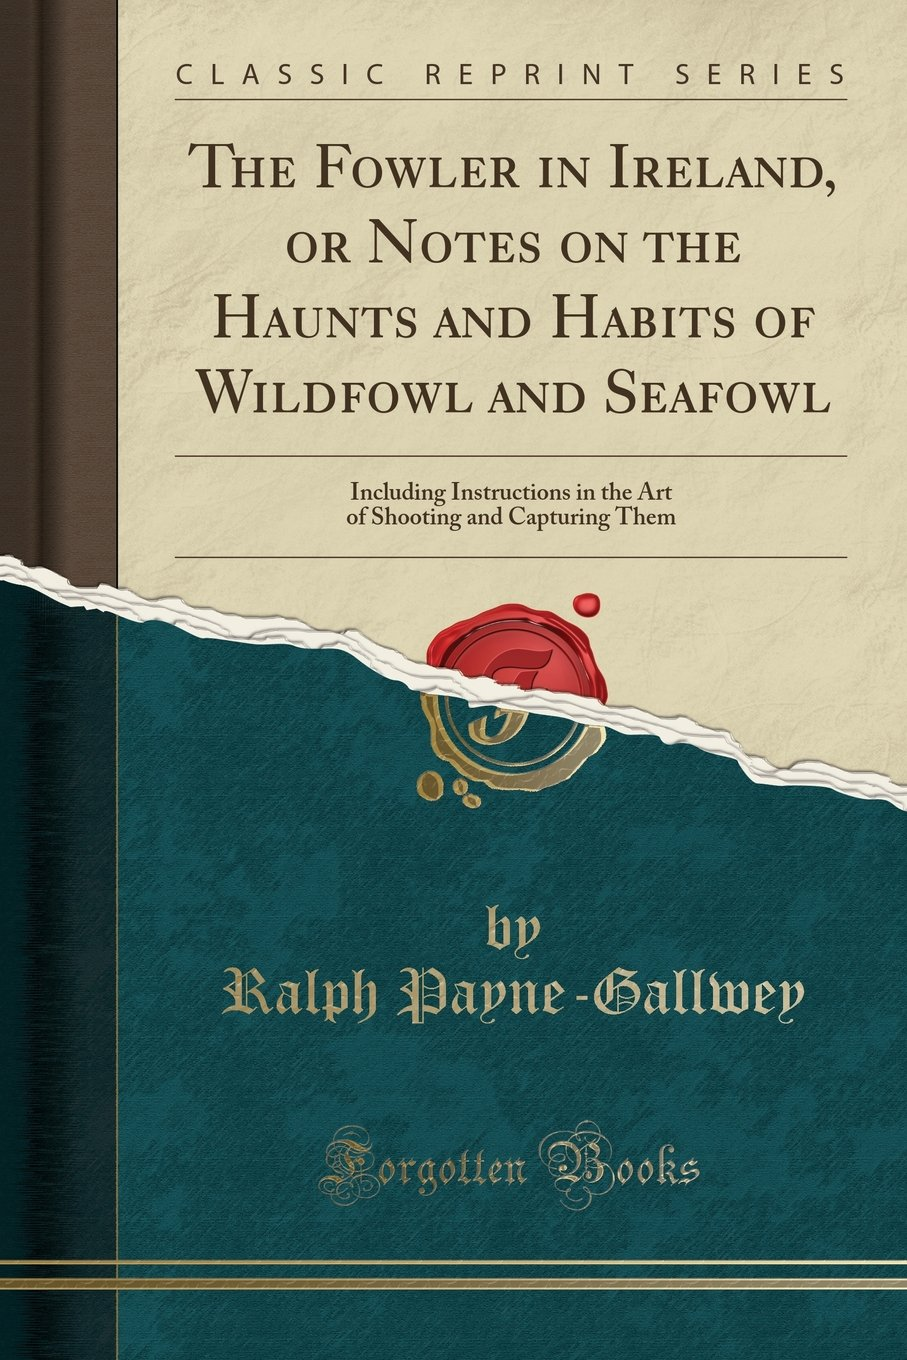 The Fowler in Ireland, or Notes on the Haunts and Habits of Wildfowl and Seafowl: Including Instructions in the Art of Shooting and Capturing Them (Classic Reprint) pdf